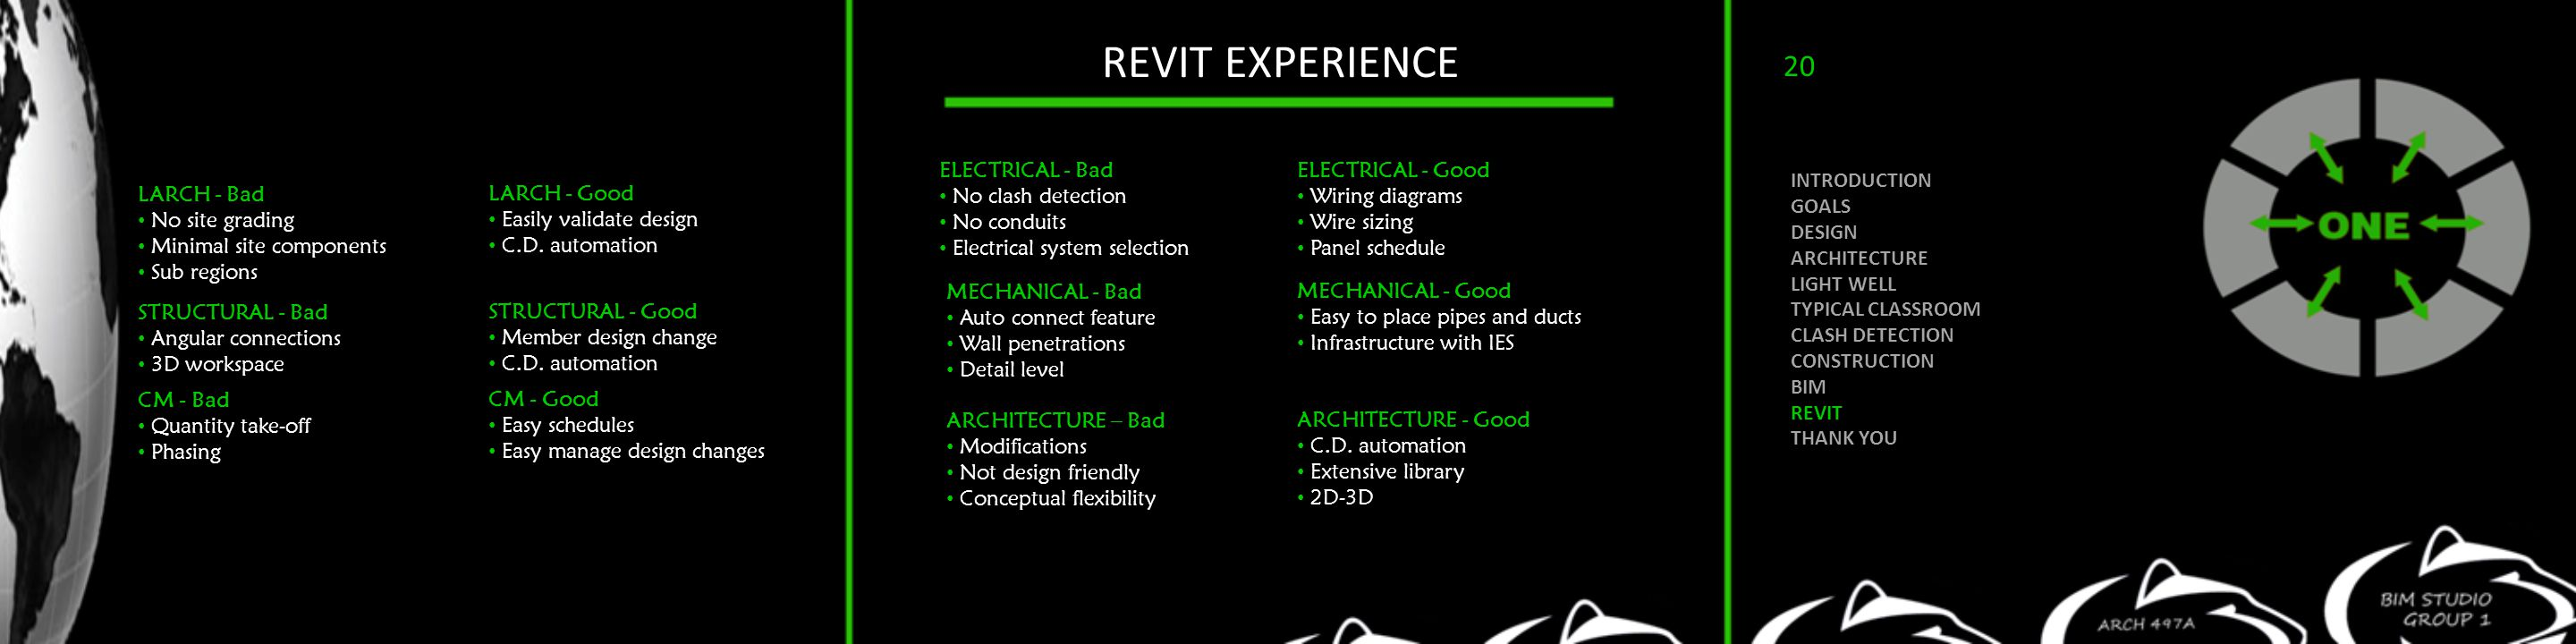 REVIT EXPERIENCE ELECTRICAL - Bad No clash detection No conduits Electrical system selection MECHANICAL - Bad Auto connect feature Wall penetrations Detail level ELECTRICAL - Good Wiring diagrams Wire sizing Panel schedule MECHANICAL - Good Easy to place pipes and ducts Infrastructure with IES LARCH - Bad No site grading Minimal site components Sub regions LARCH - Good Easily validate design C.D.